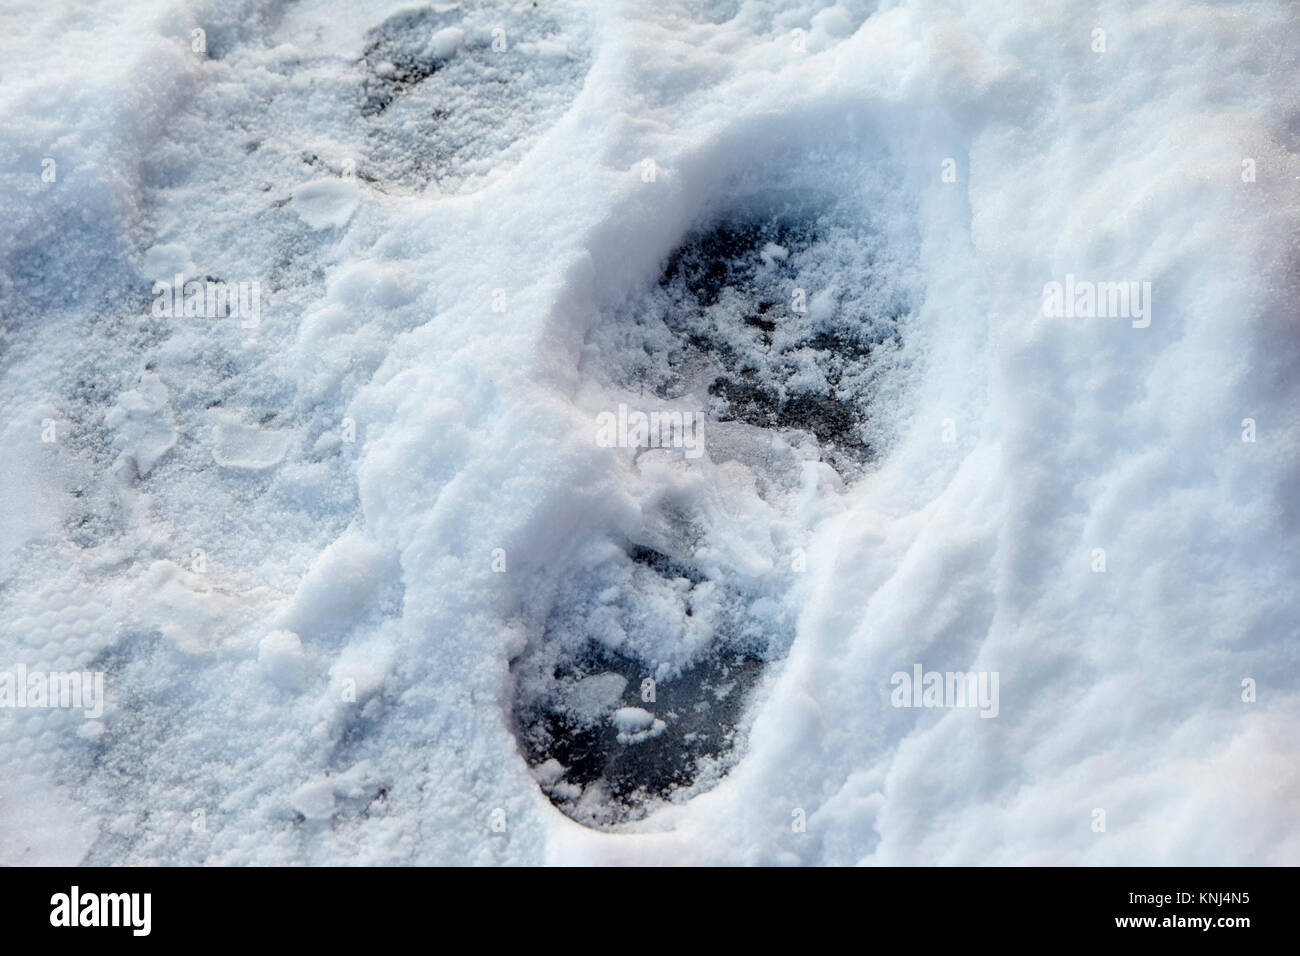 footprint in compacted snow showing black ice underneath newtownabbey northern ireland uk - Stock Image